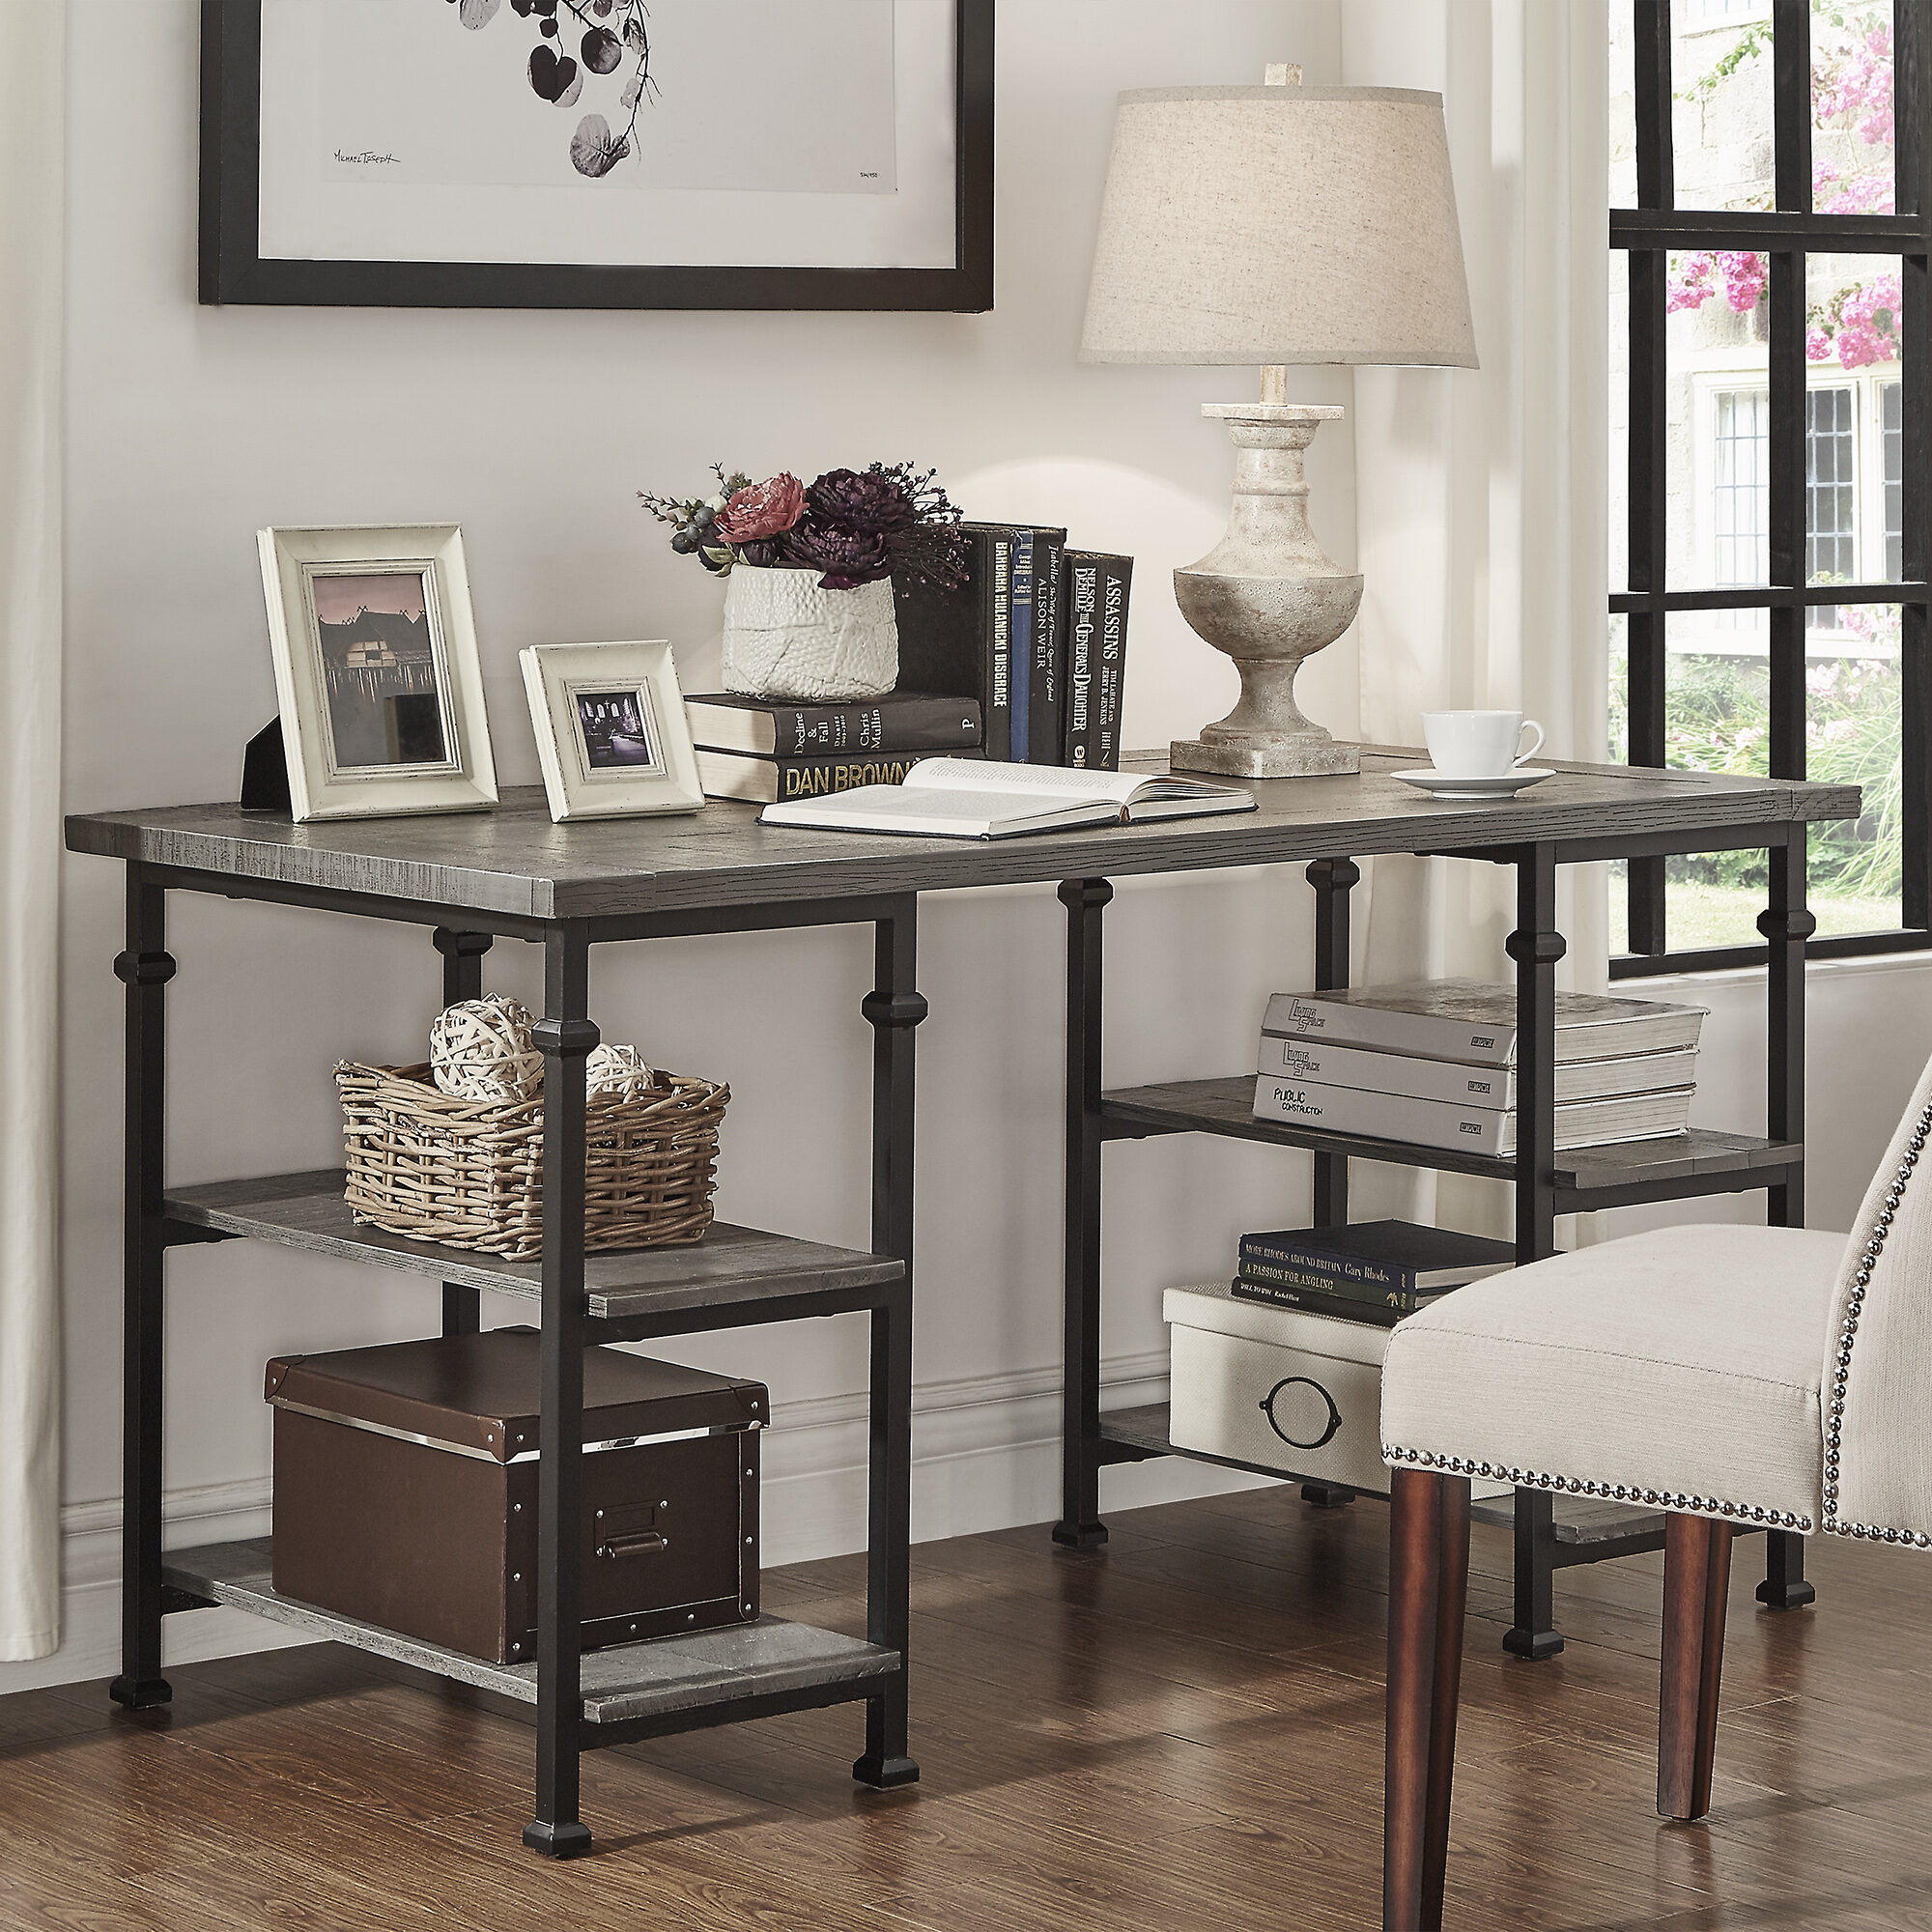 The final piece of teen bedroom furniture: a desk. This is our Myra Vintage Industrial Storage Desk by iNSPIRE Q Classic. It comes in three finishes: brown, bistre brown, and grey. The surfaces have a wood grain finish while the frame is black metal. This desk offers four airy shelves for open, easy-to-reach storage.